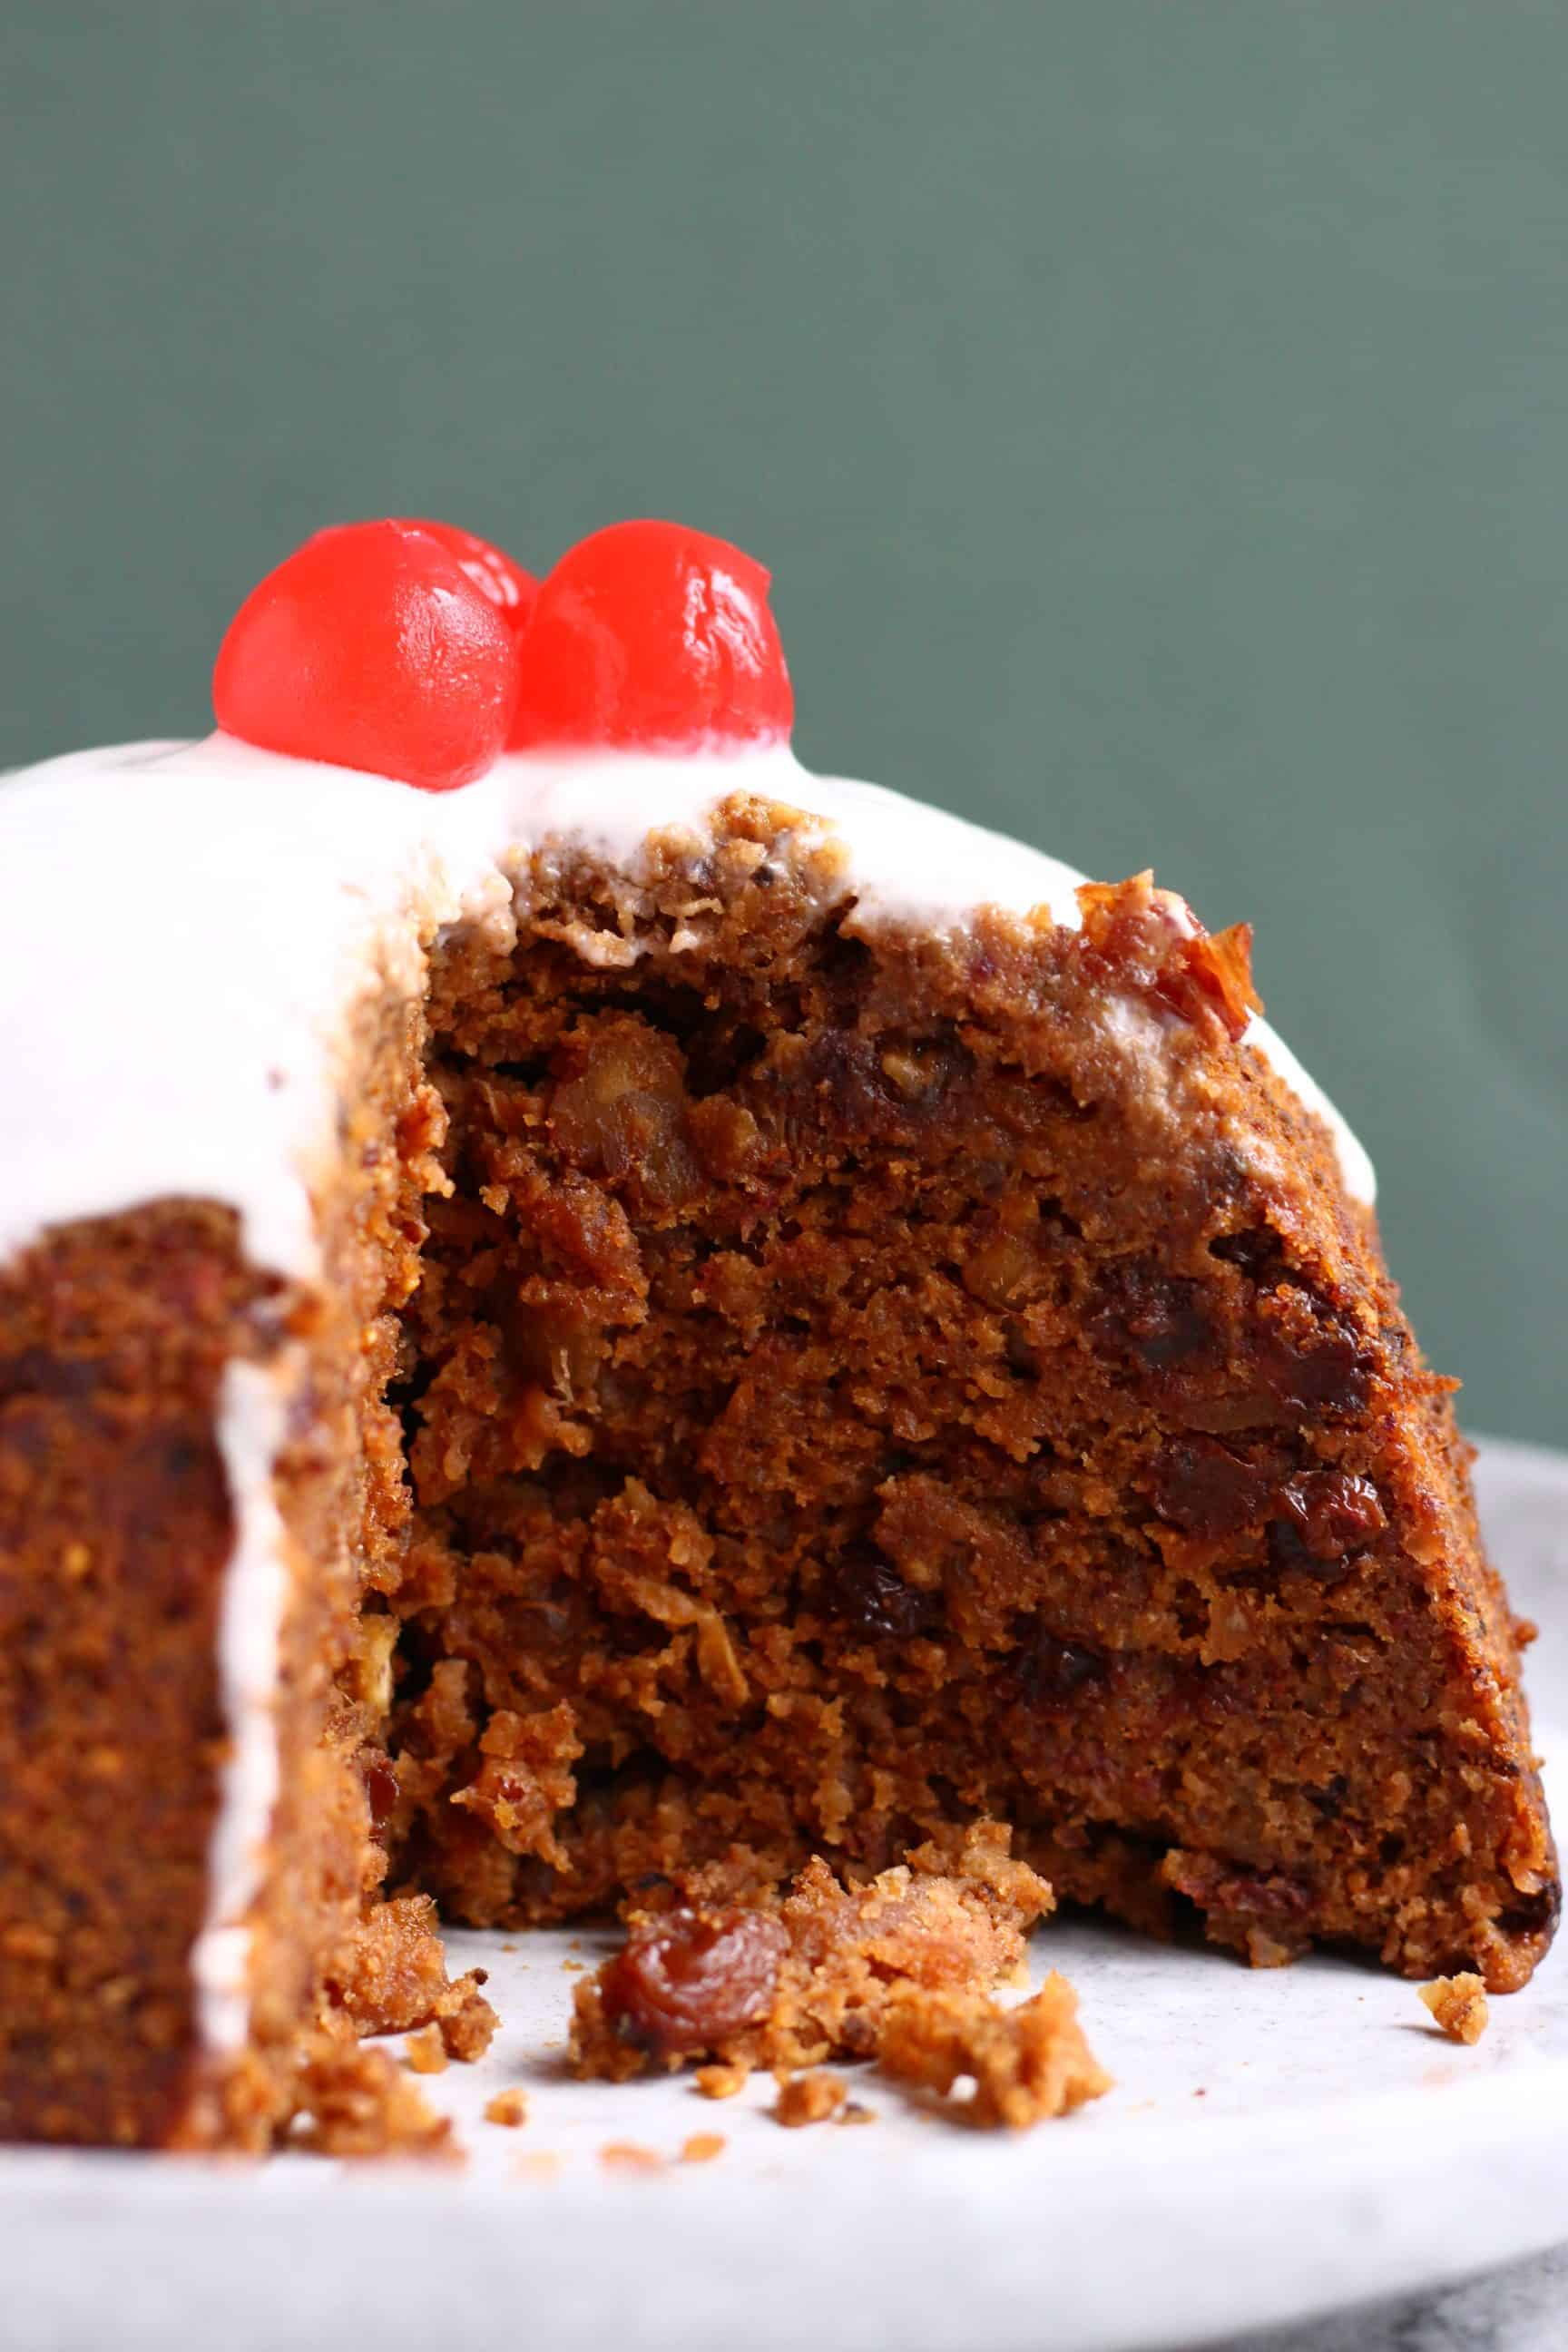 A round gluten-free vegan Christmas pudding with white cream poured over it topped with three red cherries